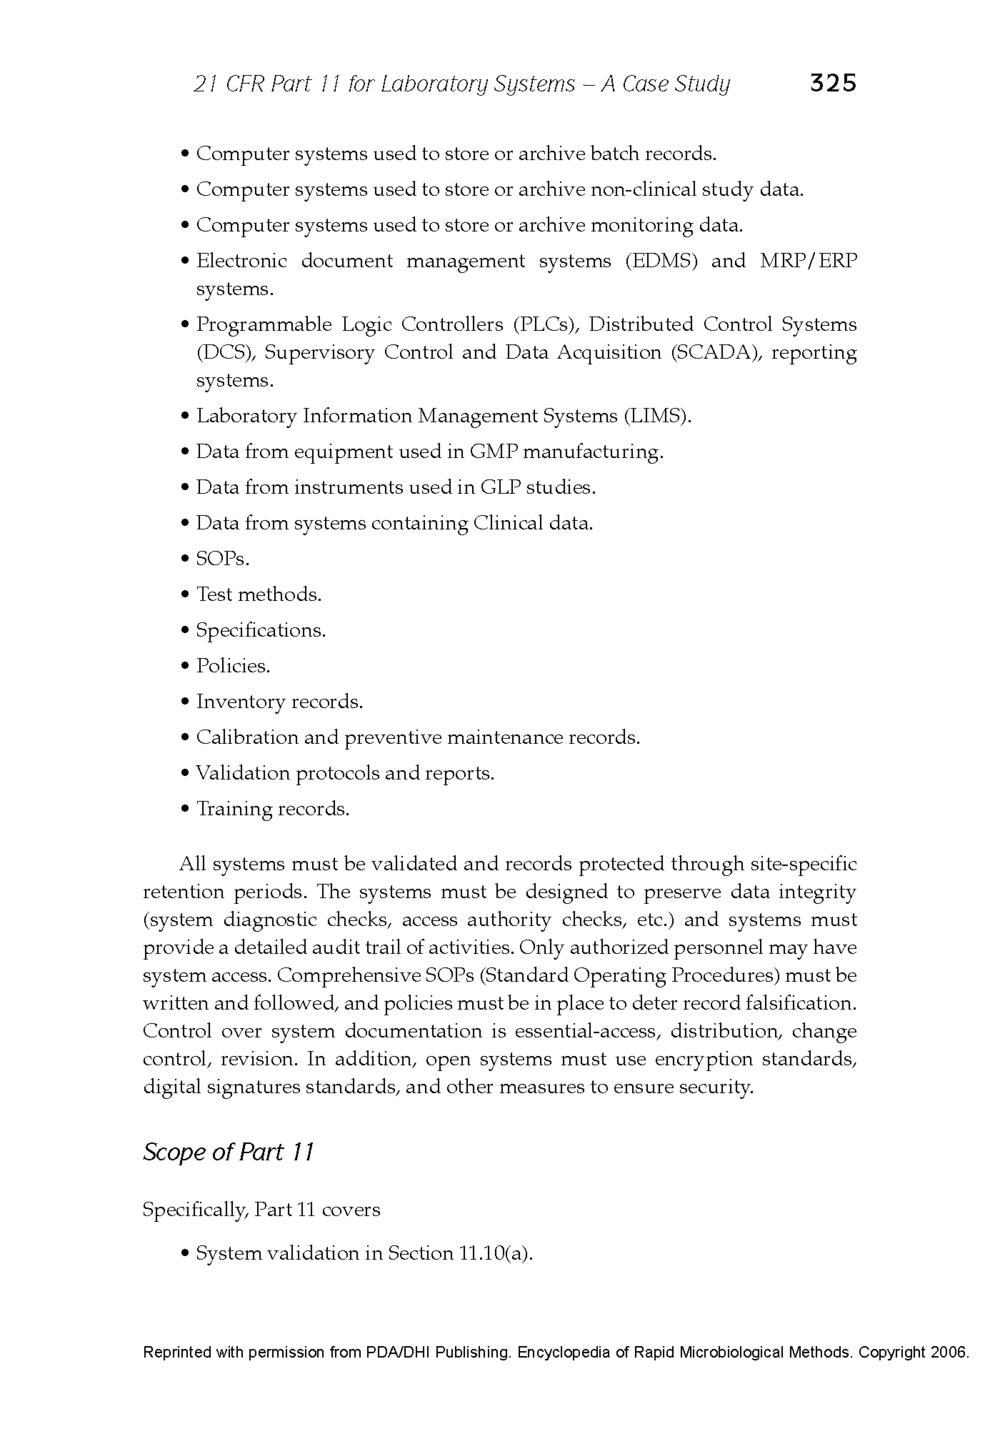 21 CFR Part 11 - Case Study Published in the Encyclopedia of Rapid Microbiological Methods - Volume 1, DHI Publishing_Page_03.png